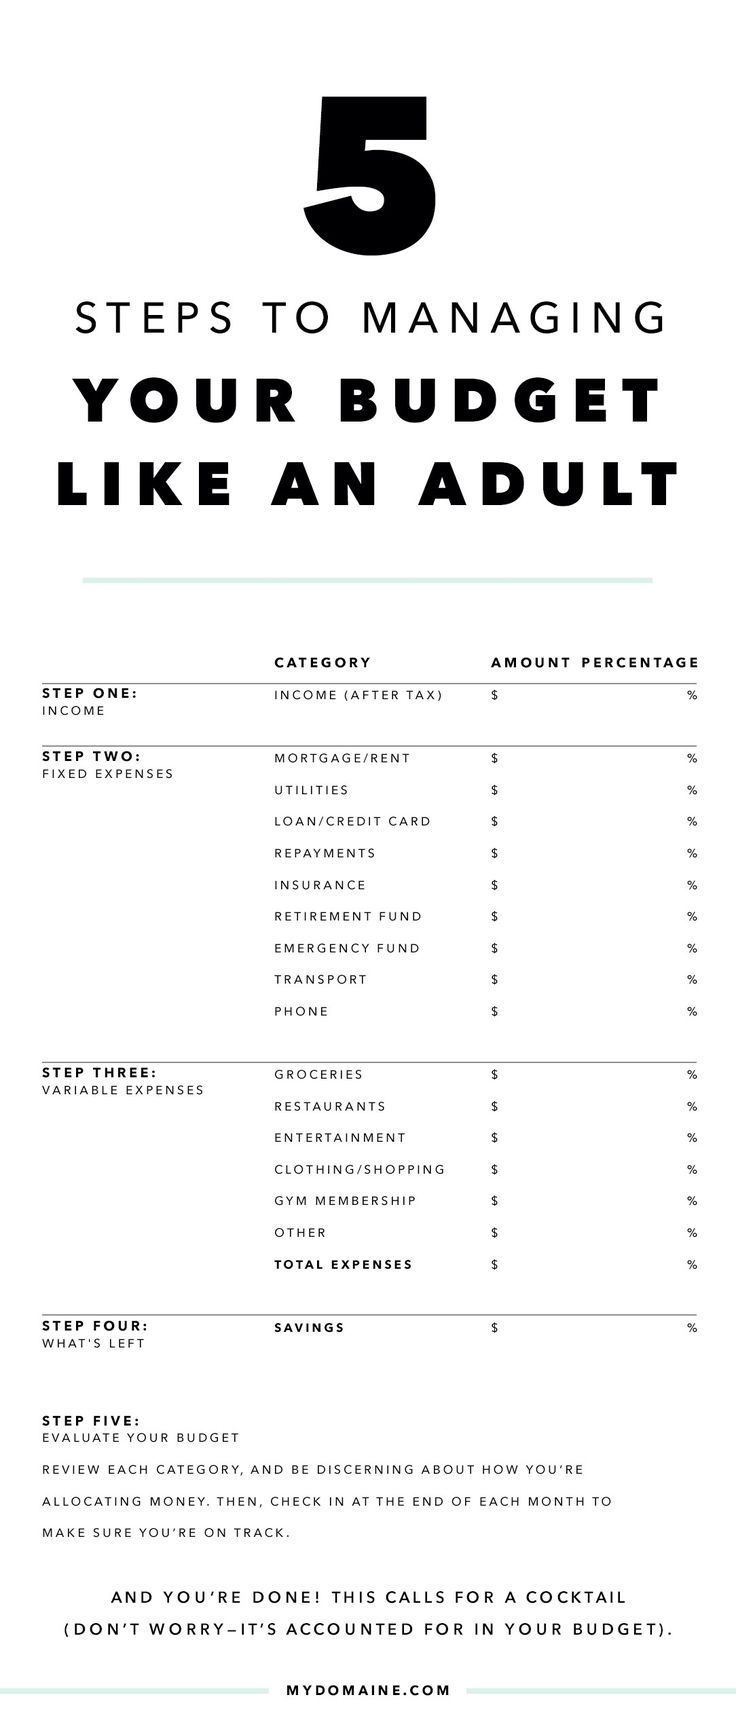 Worksheet How To Budget Your Money Worksheet 1000 ideas about budgeting worksheets on pinterest everything you need to know manage your finances like an adult via mydomaine